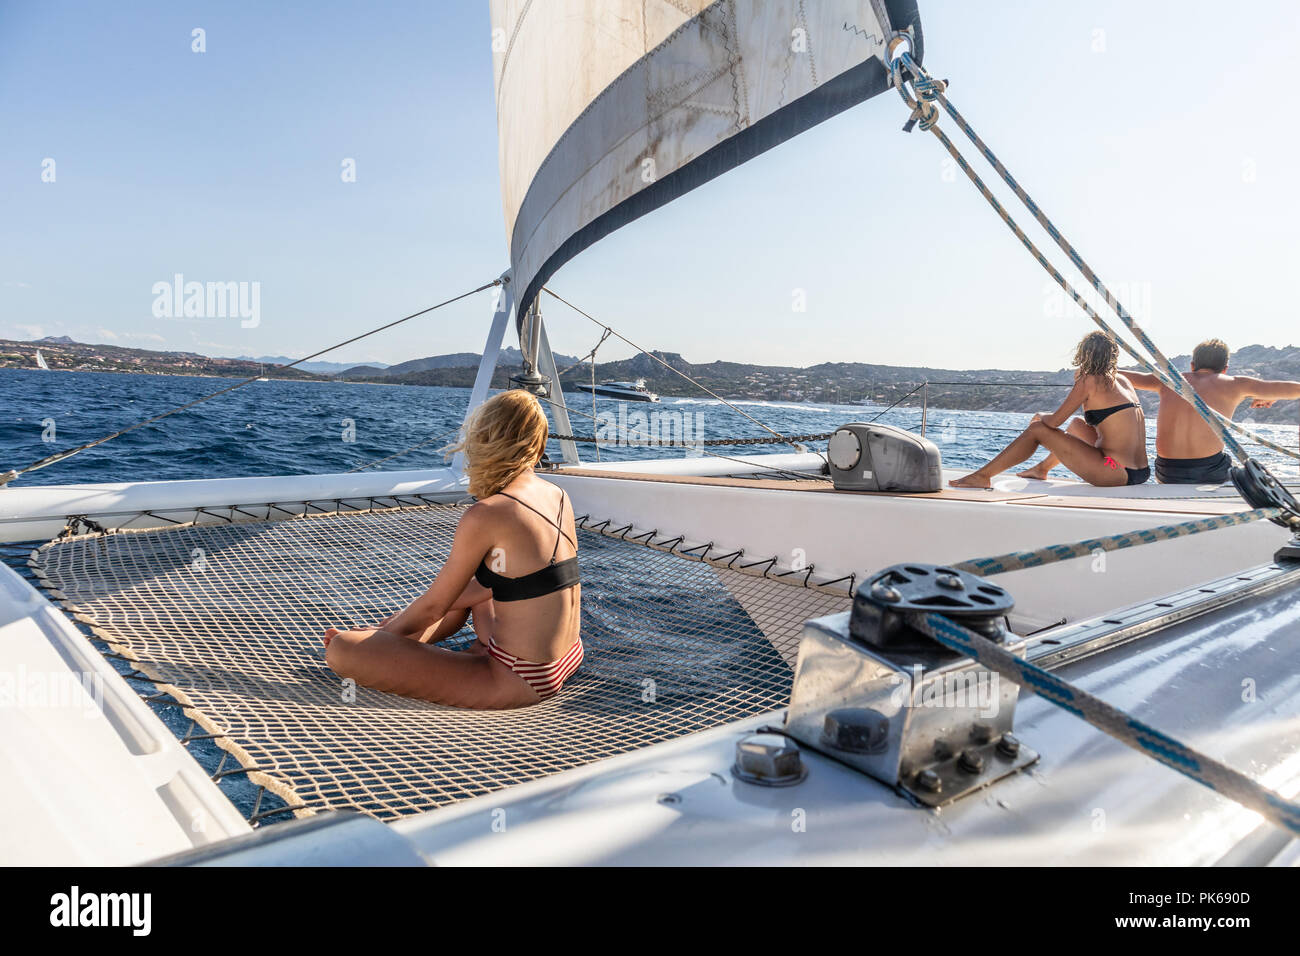 People relaxing on a summer sailing cruise, sitting on a luxury catamaran near picture perfect Palau town, Sardinia, Italy. Stock Photo